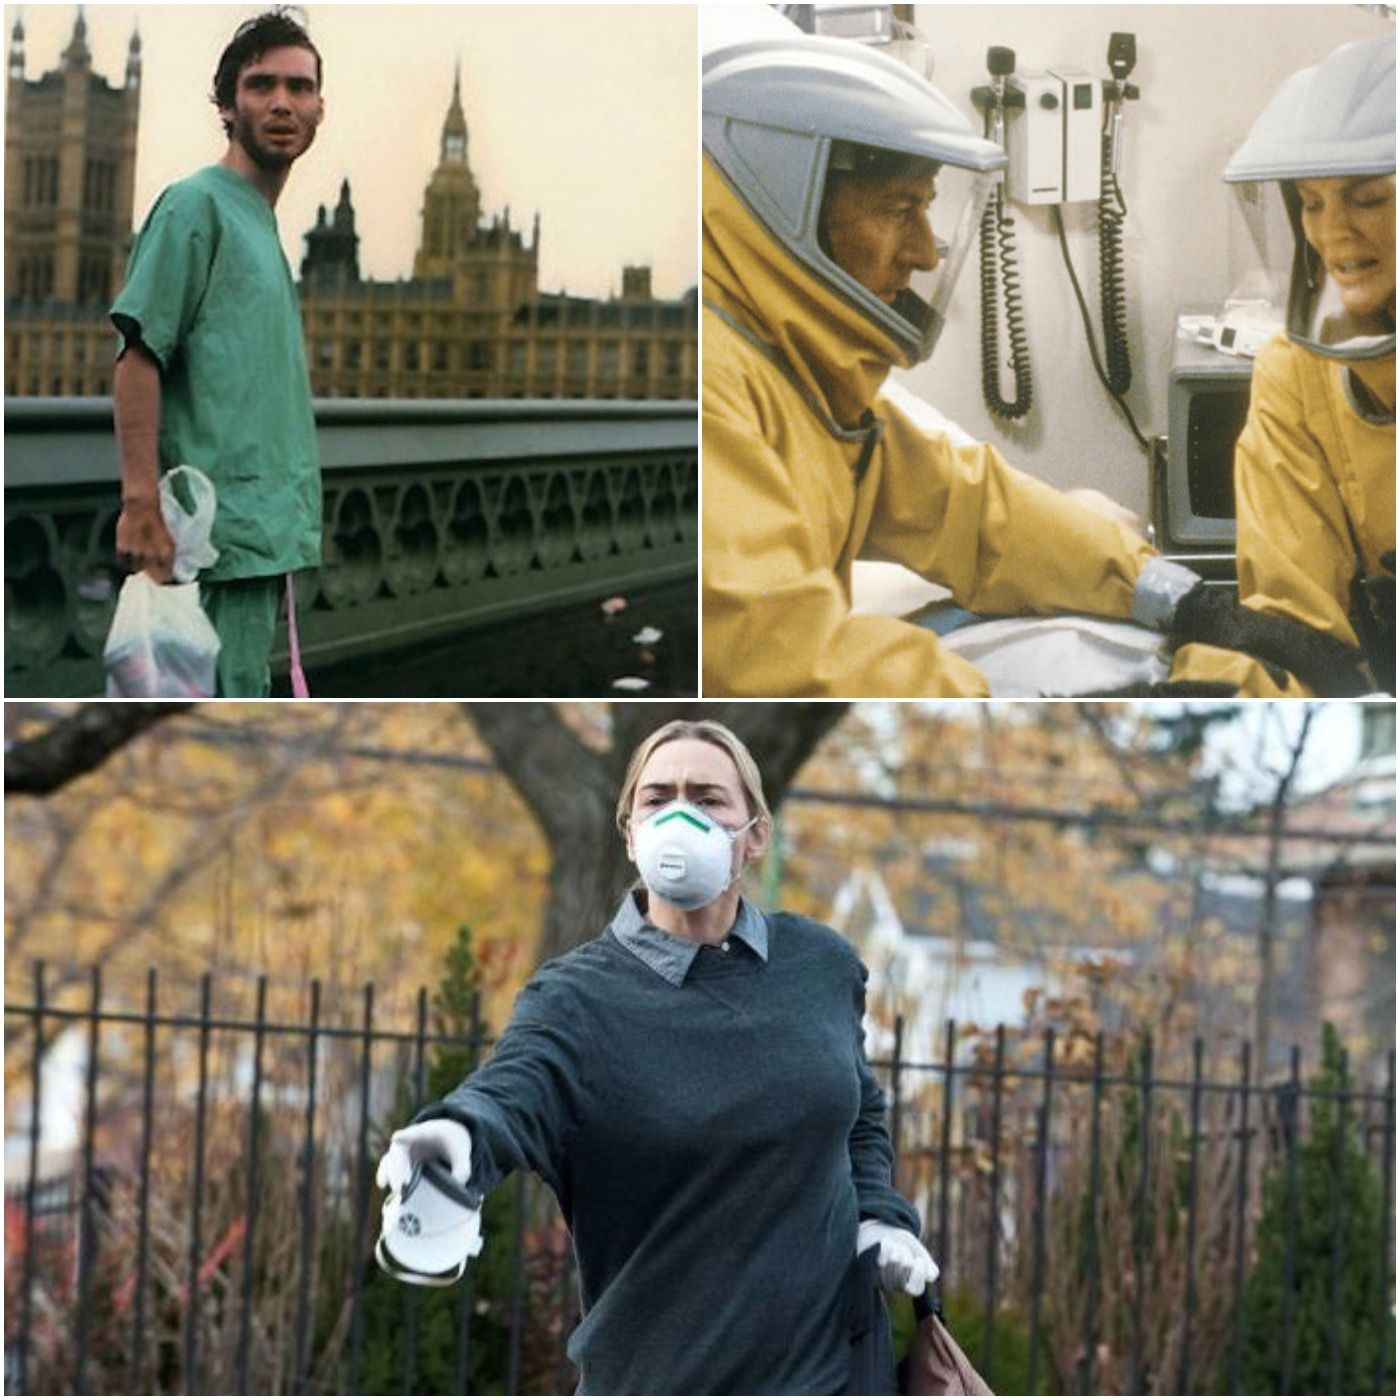 11. Contagions & Outbreaks: Pandemic Cinema Scores